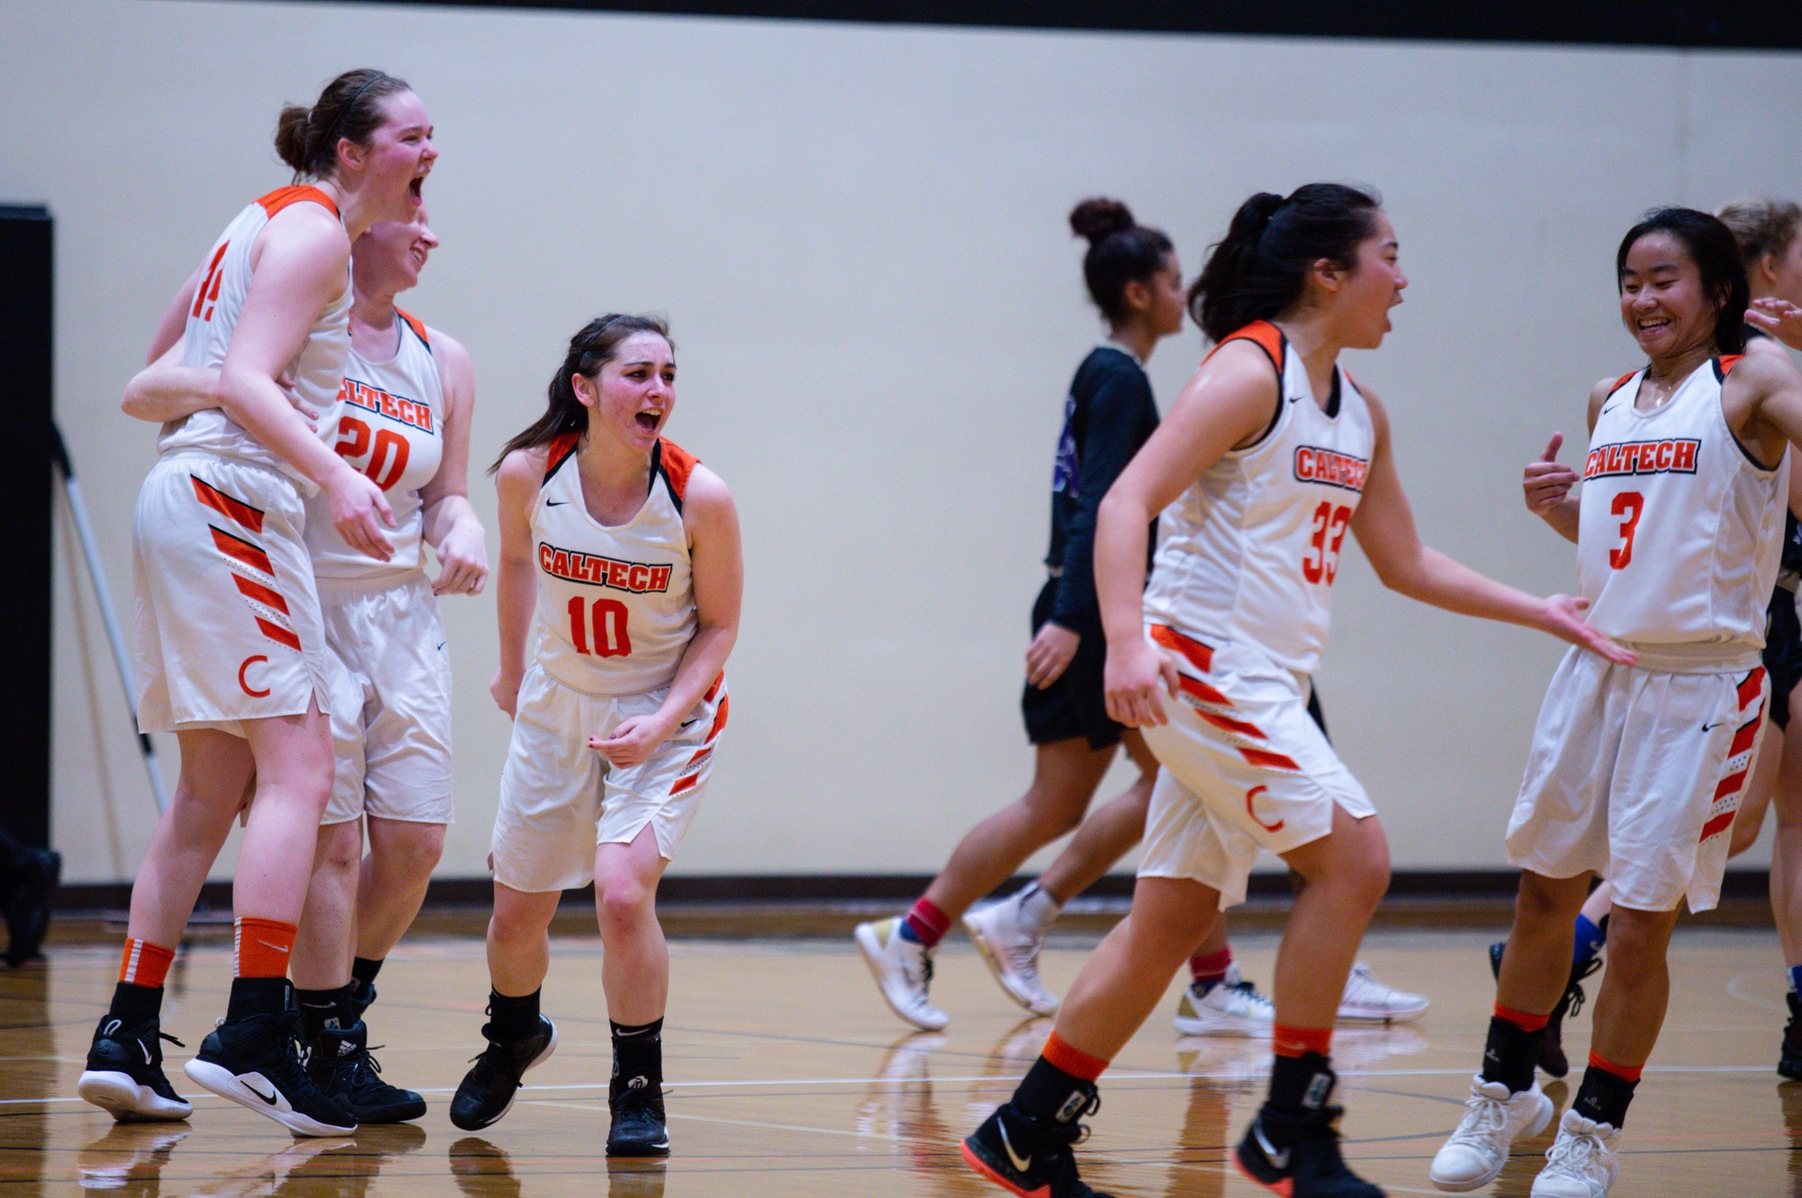 Women's Basketball Wins Fourth Straight, First Over Whittier Since 06-07